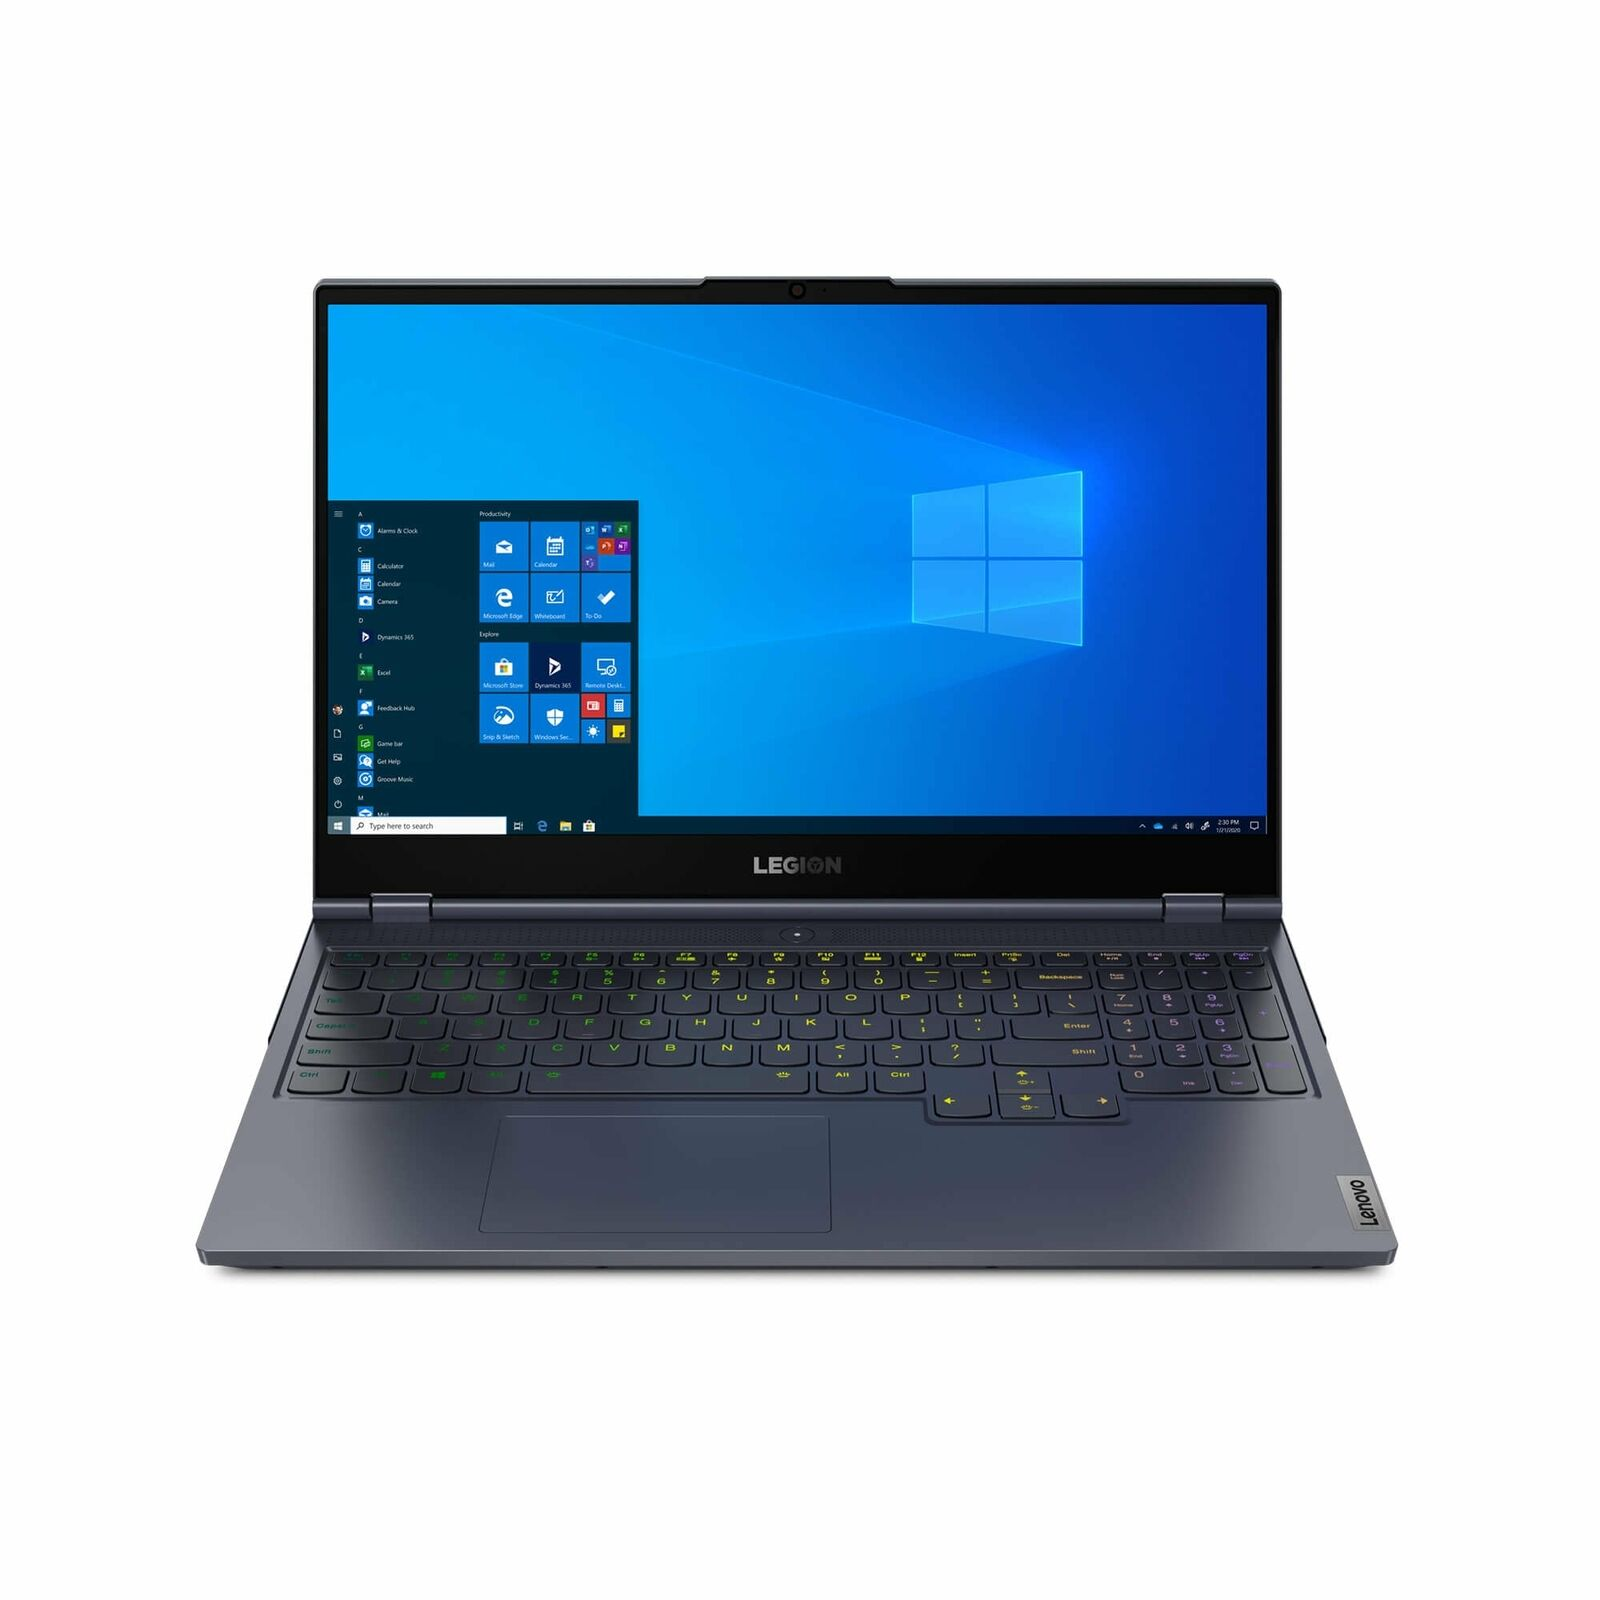 Lenovo Legion 7i Laptop, 15.6 FHD 144Hz, i7-10750H, RTX 2070 MaxQ, 16GB, 1TB SSD. Buy it now for 1299.99